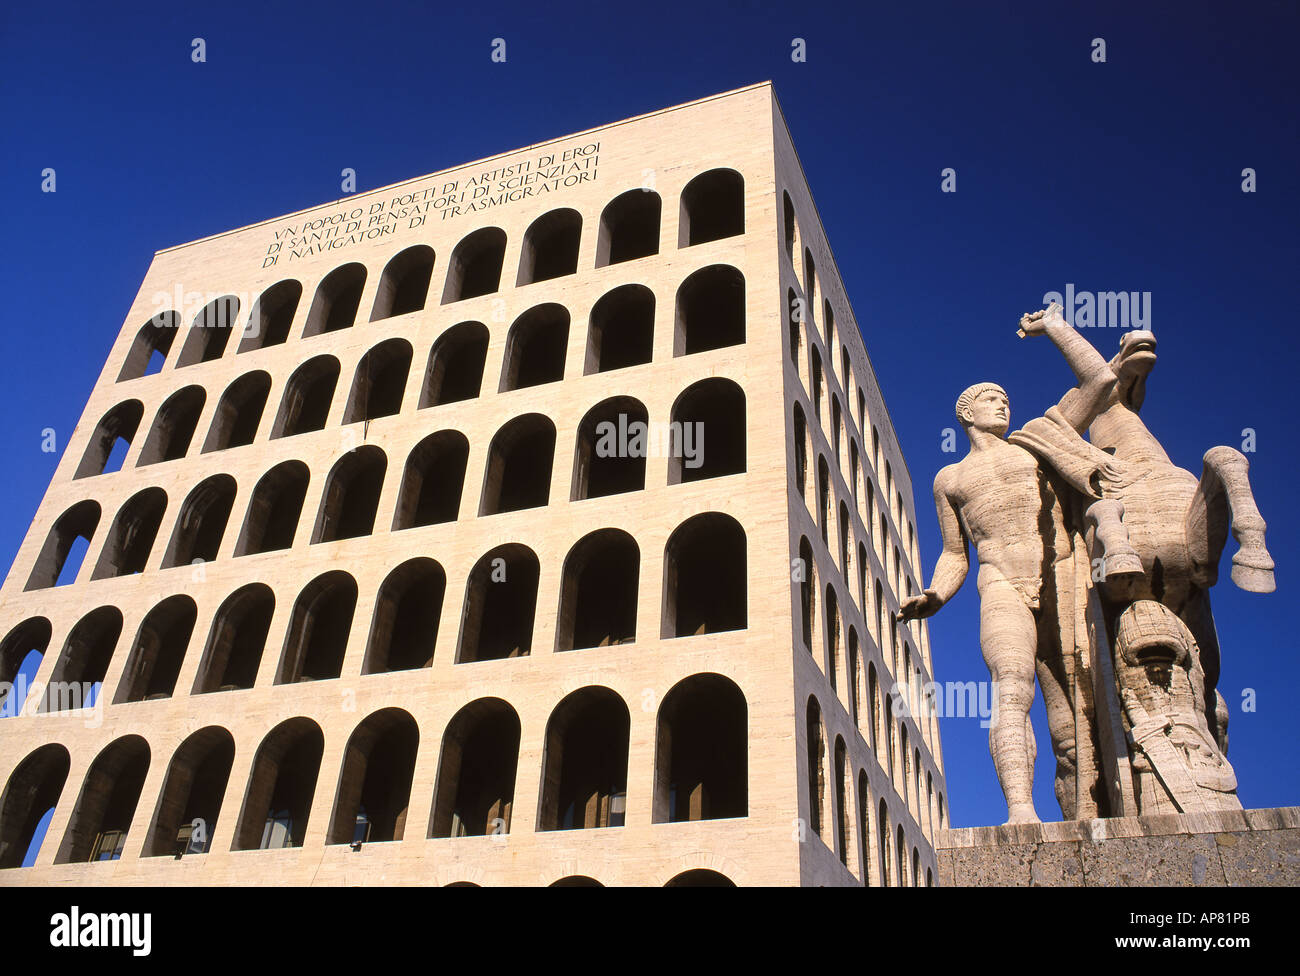 Banco Nationale Di Lavoro : Fascist era stock photos & fascist era stock images alamy